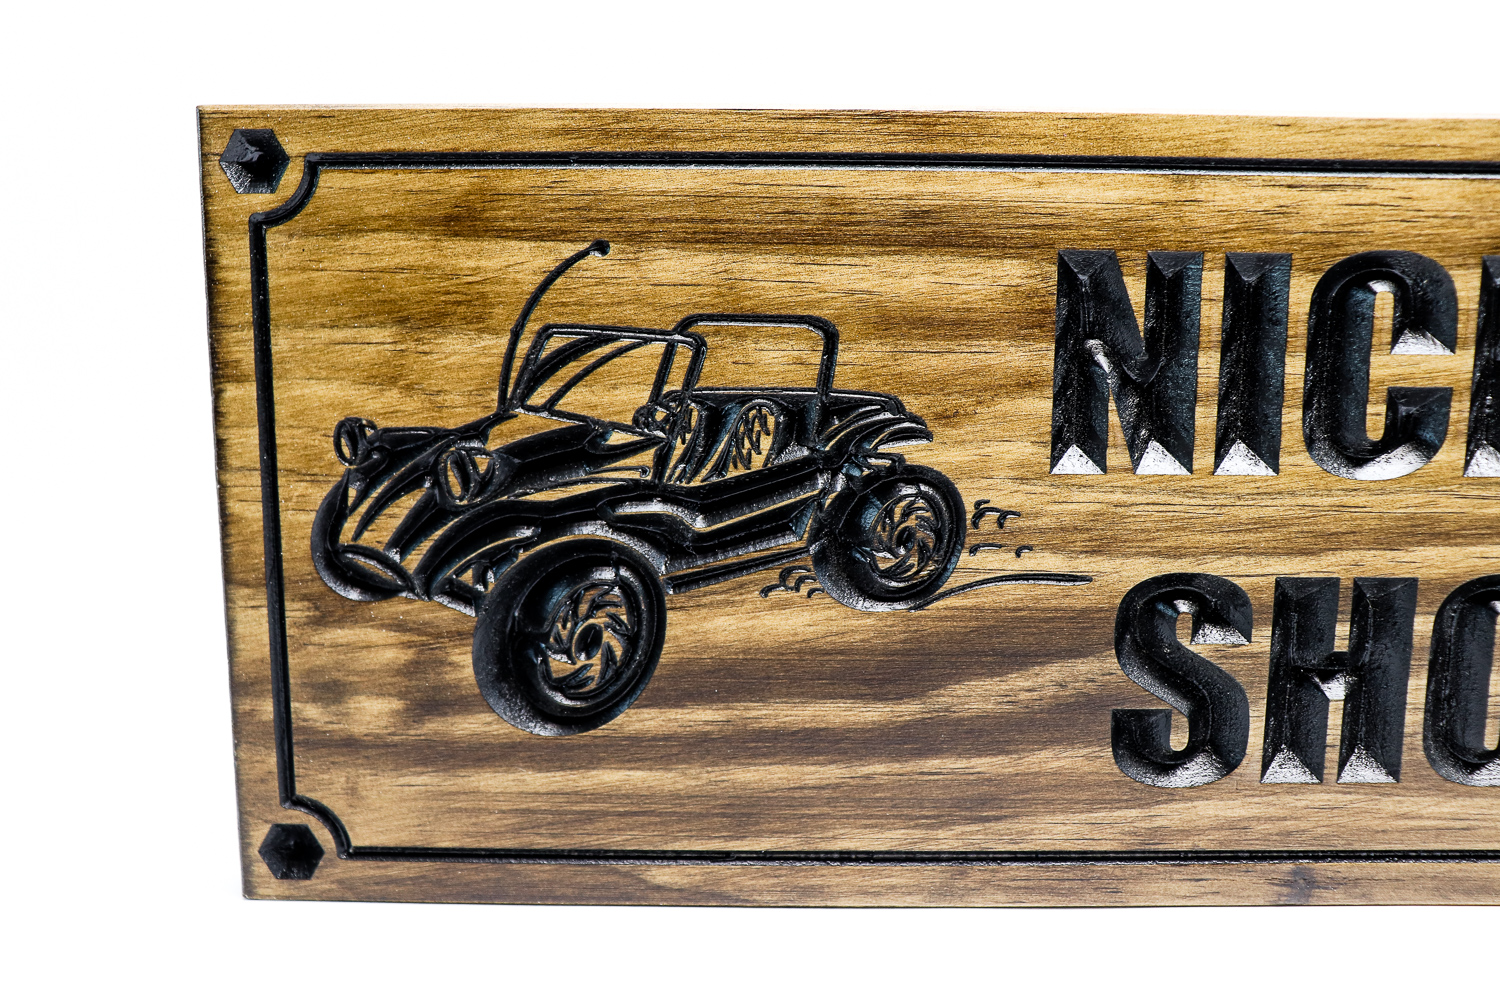 dune buggy wooden sign